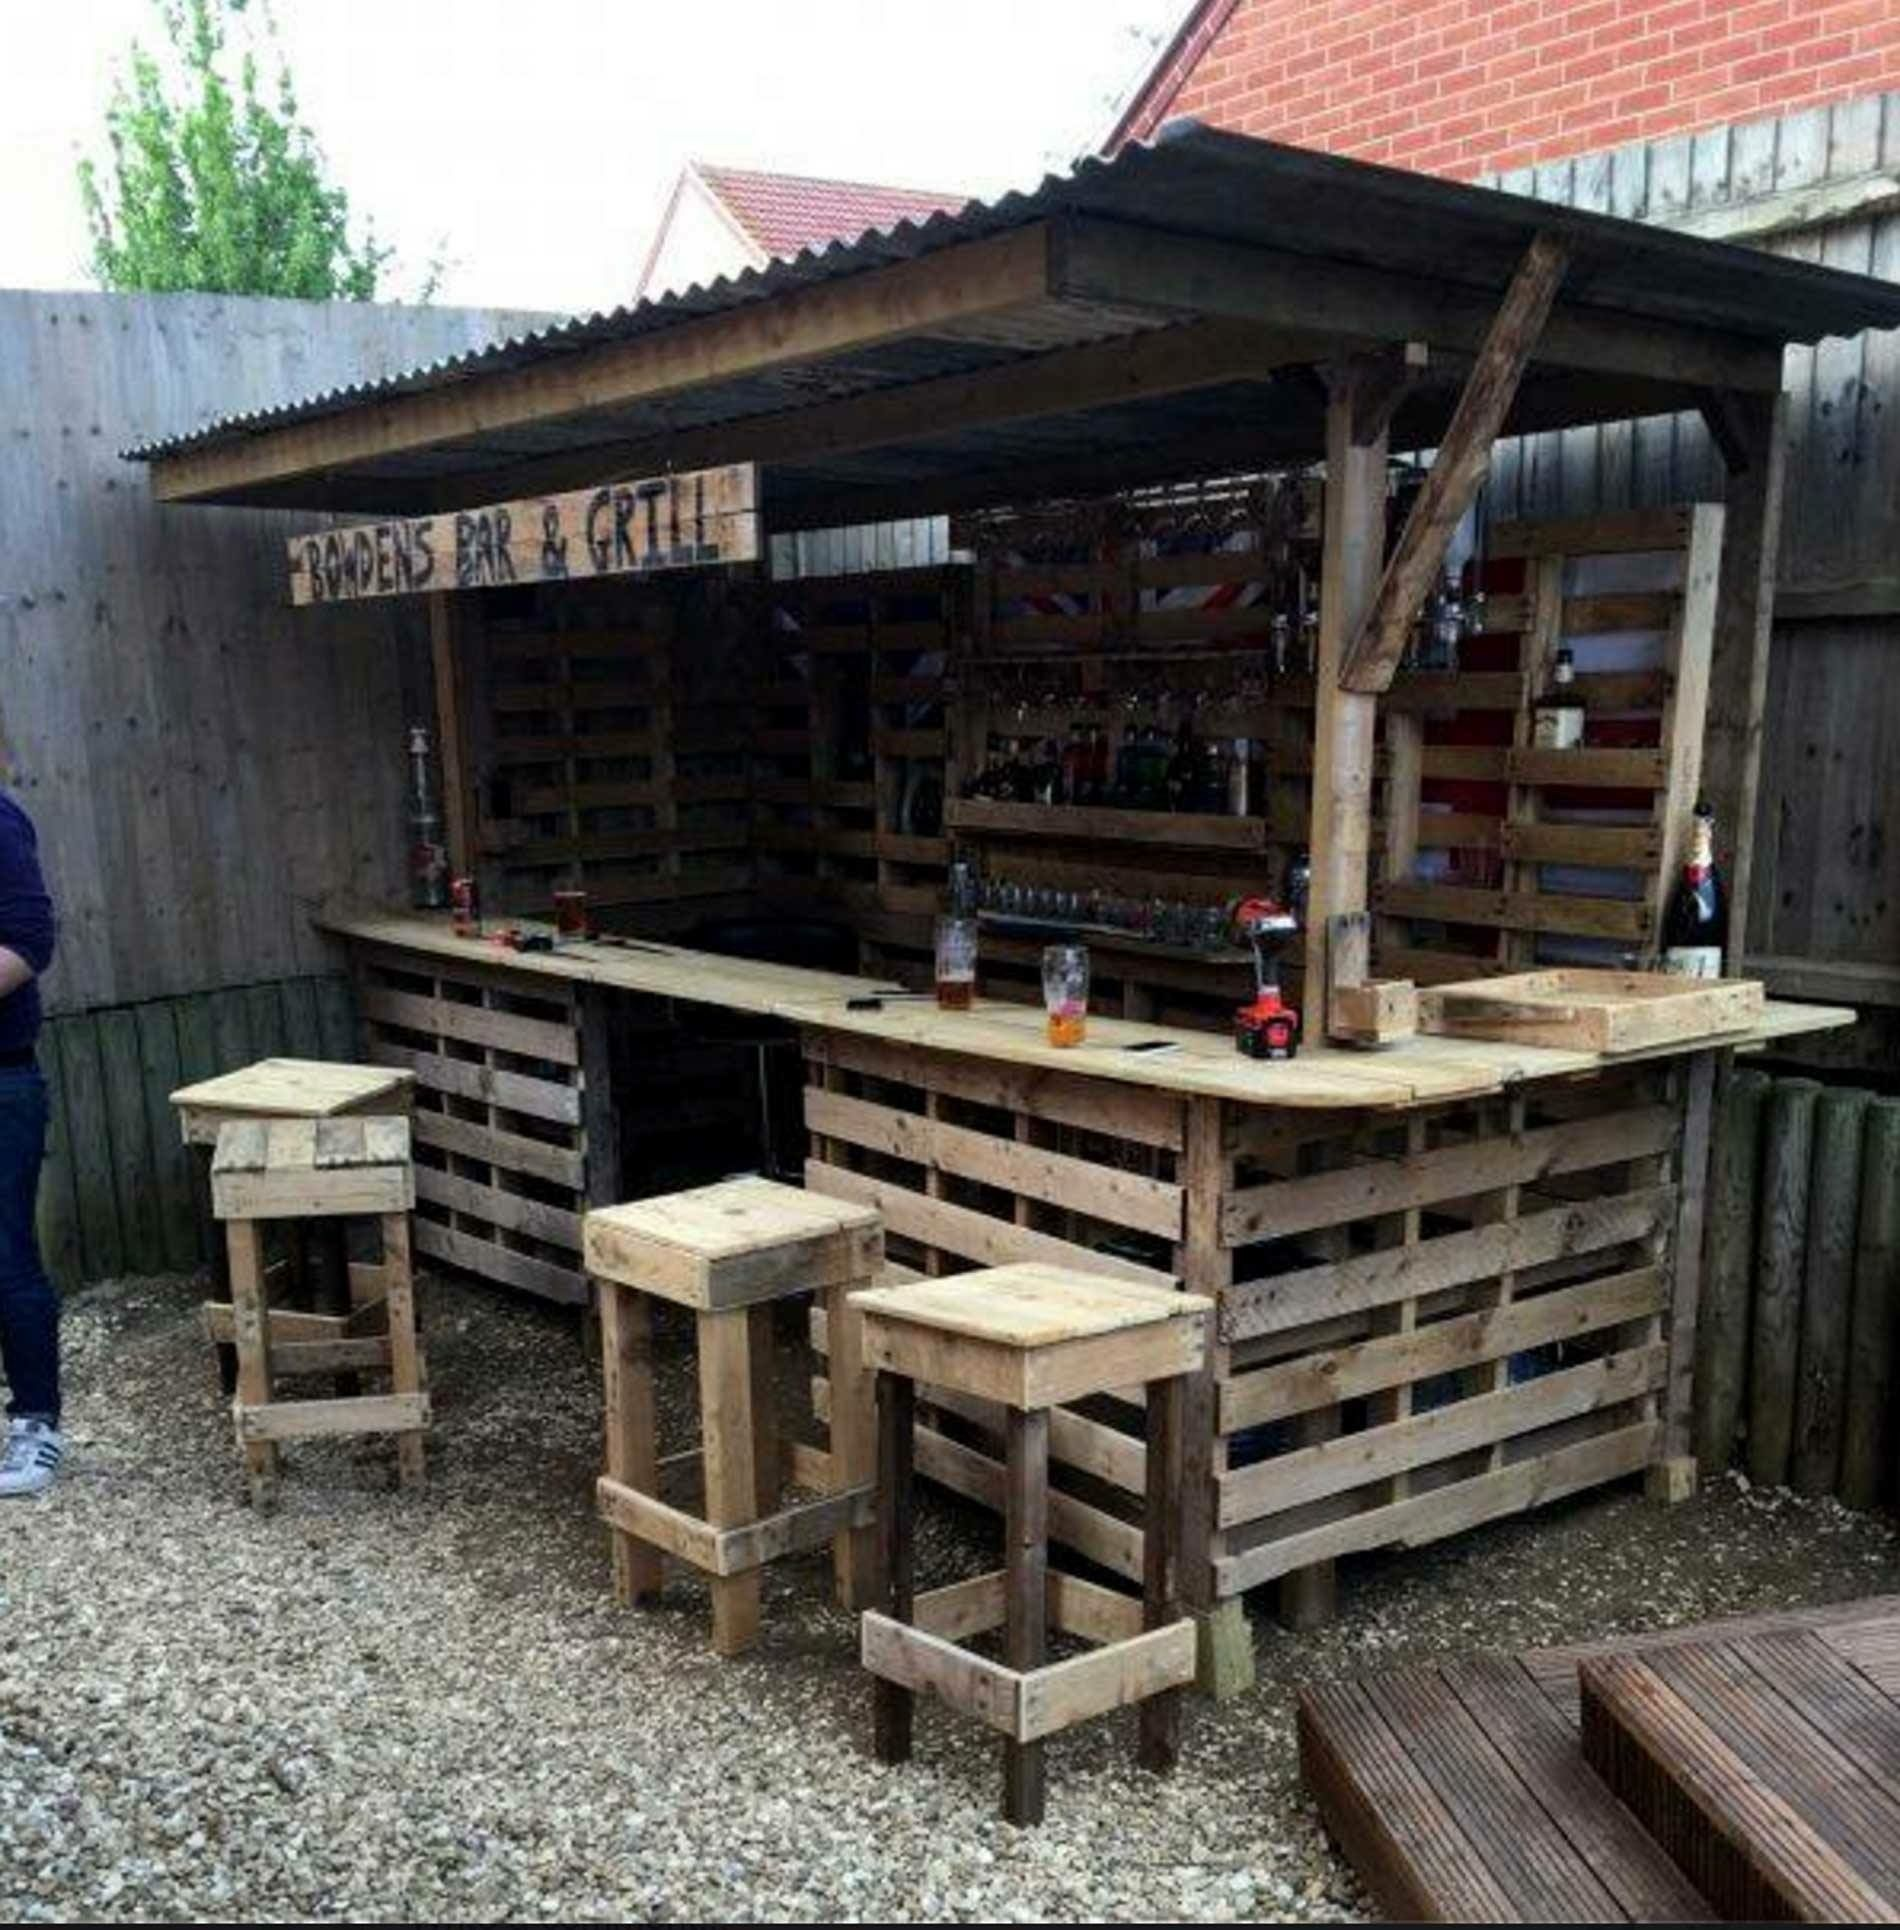 Pallet bar wedding back yard wedding muebles palets for Diseno de muebles de jardin al aire libre